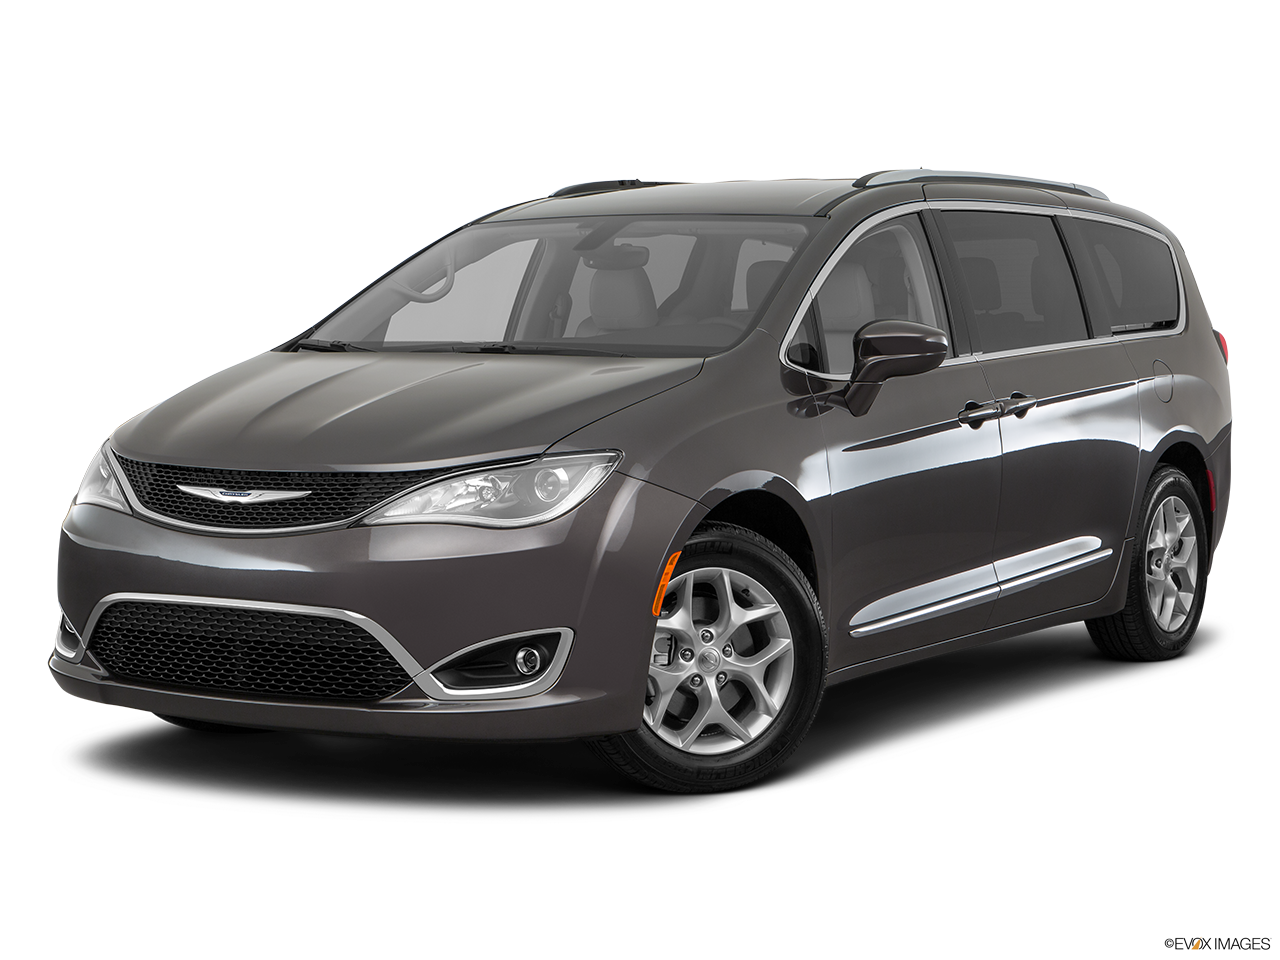 Test Drive A 2017 Chrysler Pacifica at Cullman Chrysler Dodge Jeep Ram in Cullman